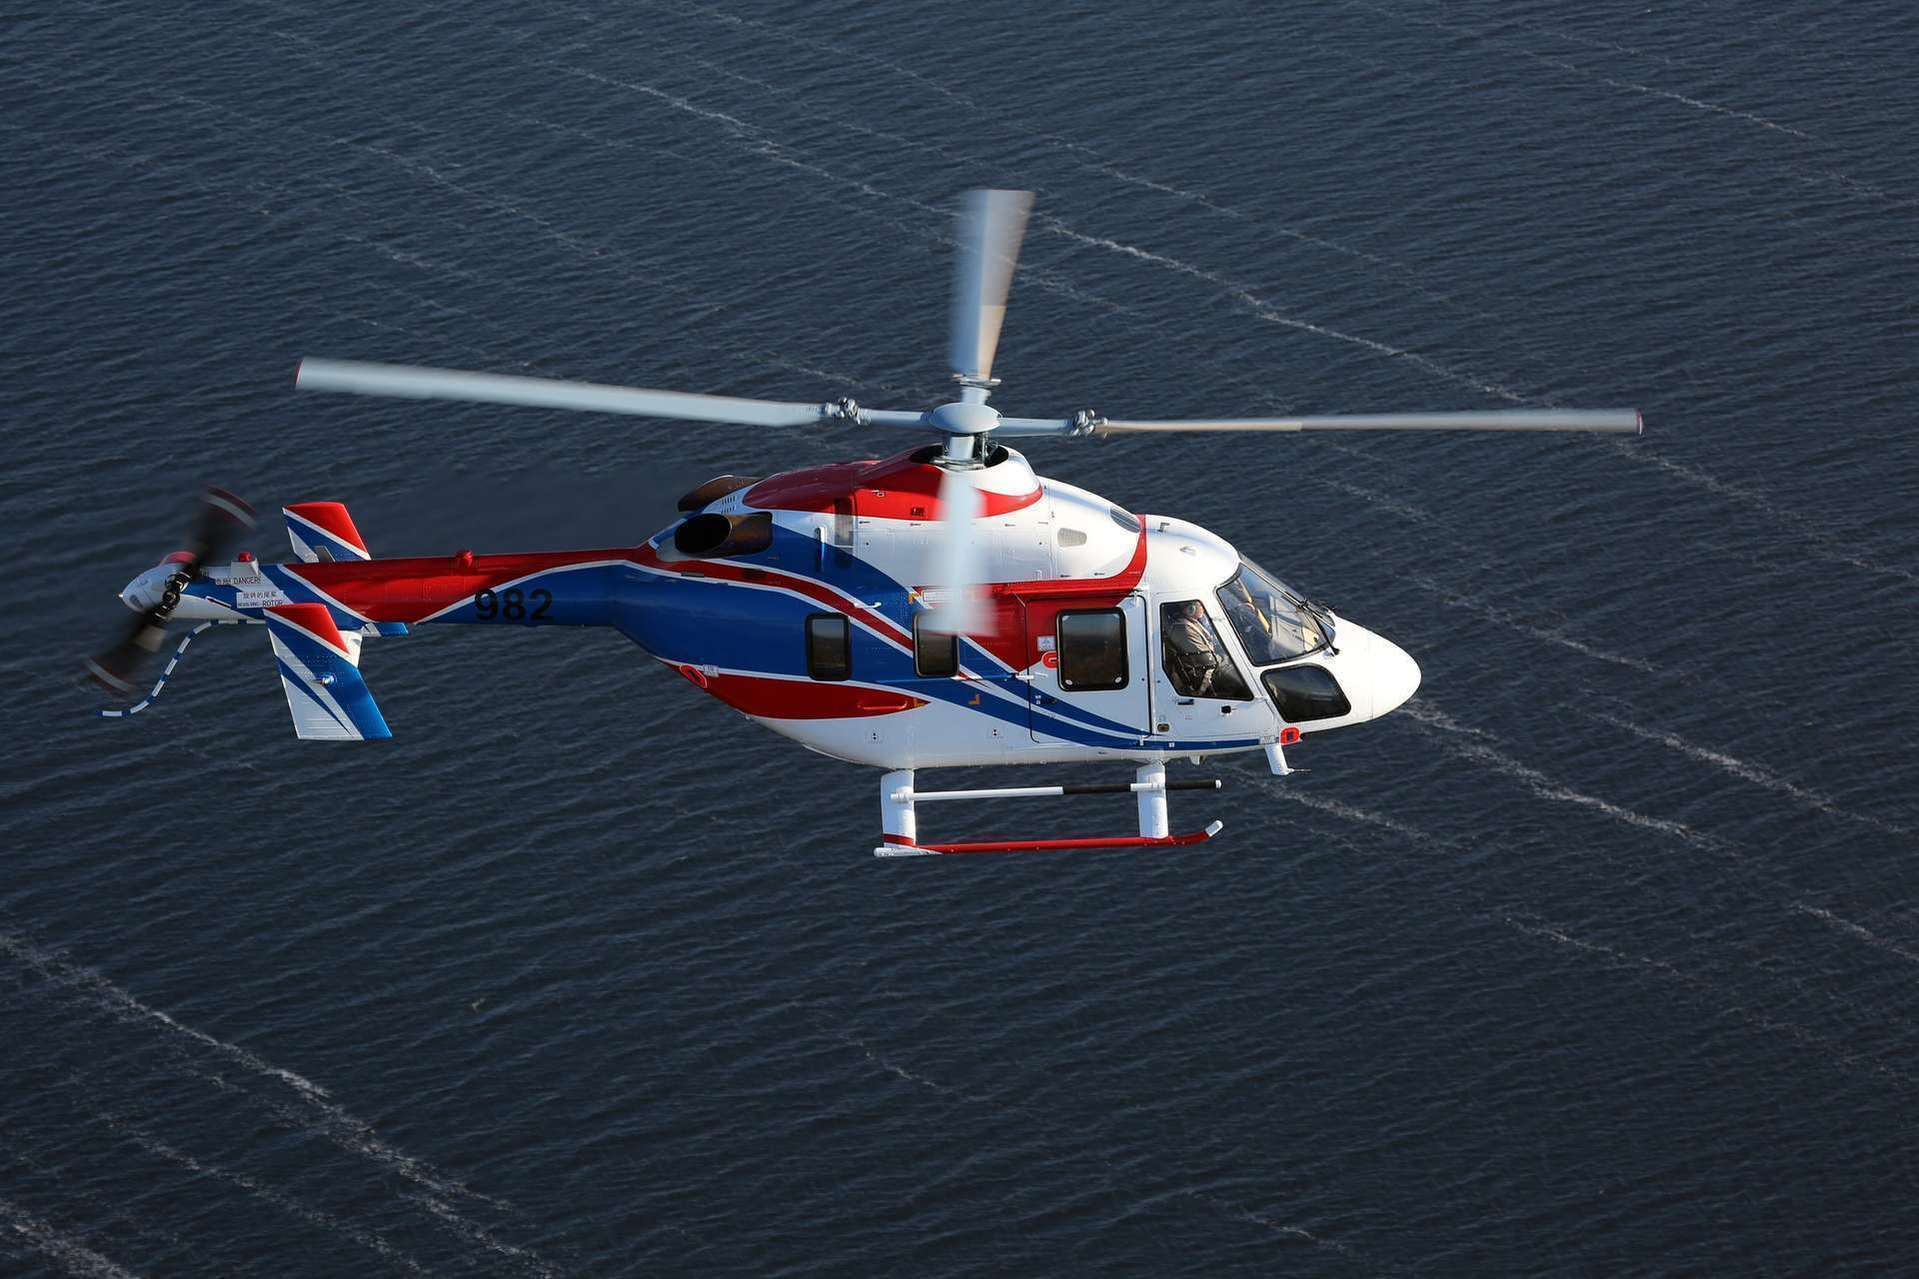 Russian Helicopters demonstrates Ansat with a new satellite communication system at Paris Air Show 2019